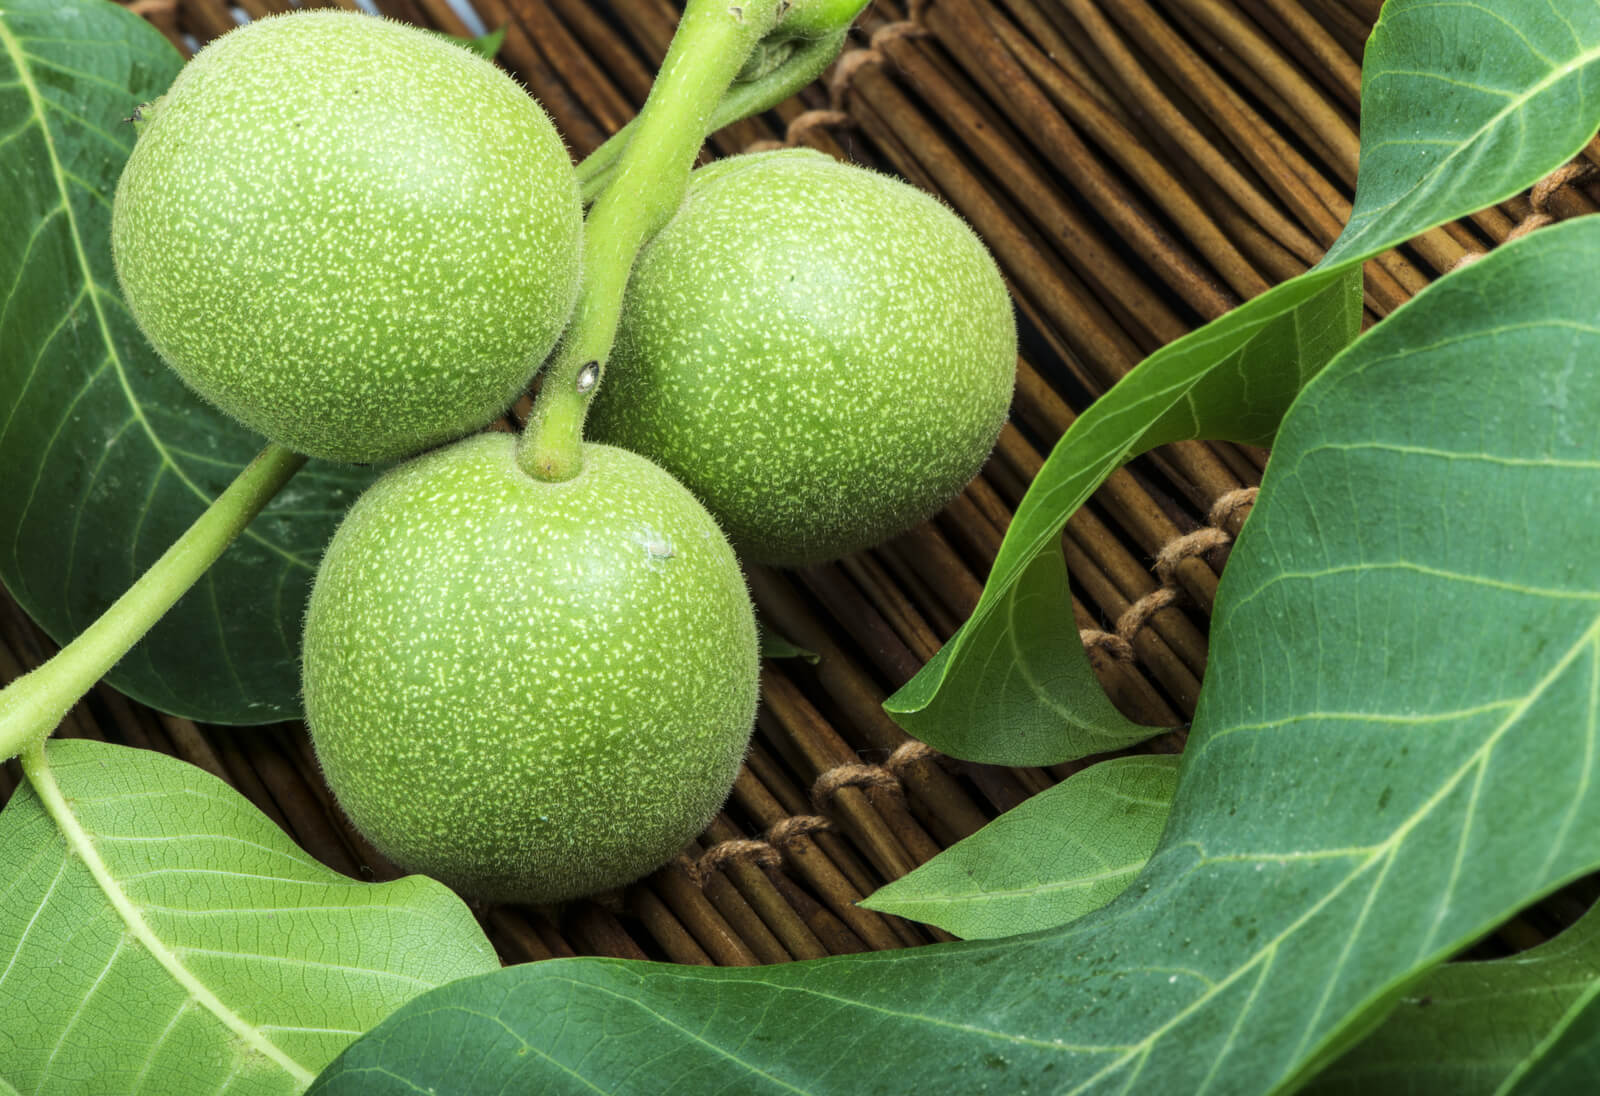 Black Walnut Husks for Yeast Infection